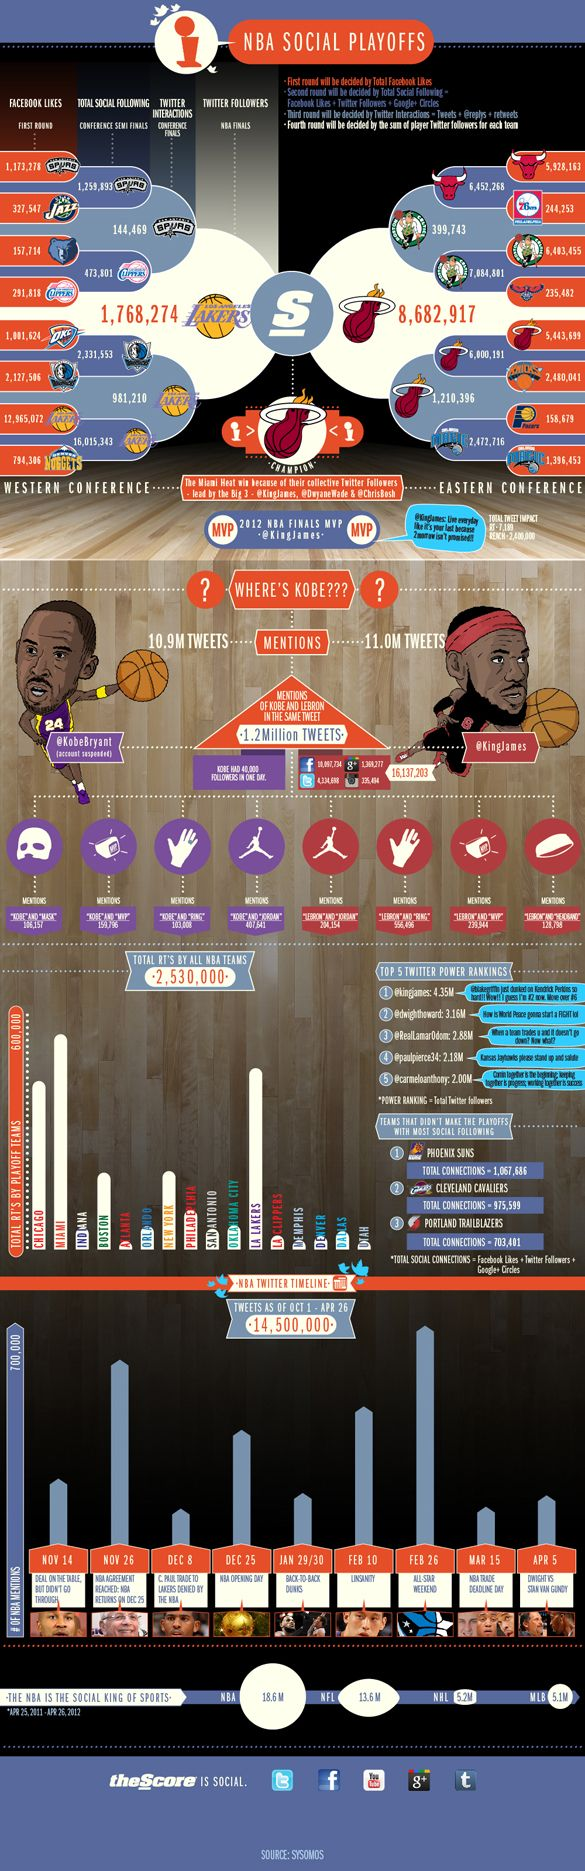 """TheScore has dubbed the Miami Heat the winner of its first """"NBA Social Playoffs"""" and LeBron James its MVP. James and the Heat beat out Kobe Bryant and the Los Angeles Lakers in a simulation run by theScore, which analyzed the social media presence of NBA teams. The infographic displays all the factors that went into determining the winner, including Facebook likes, Twitter followers, Google+ circles and Twitter interactions."""